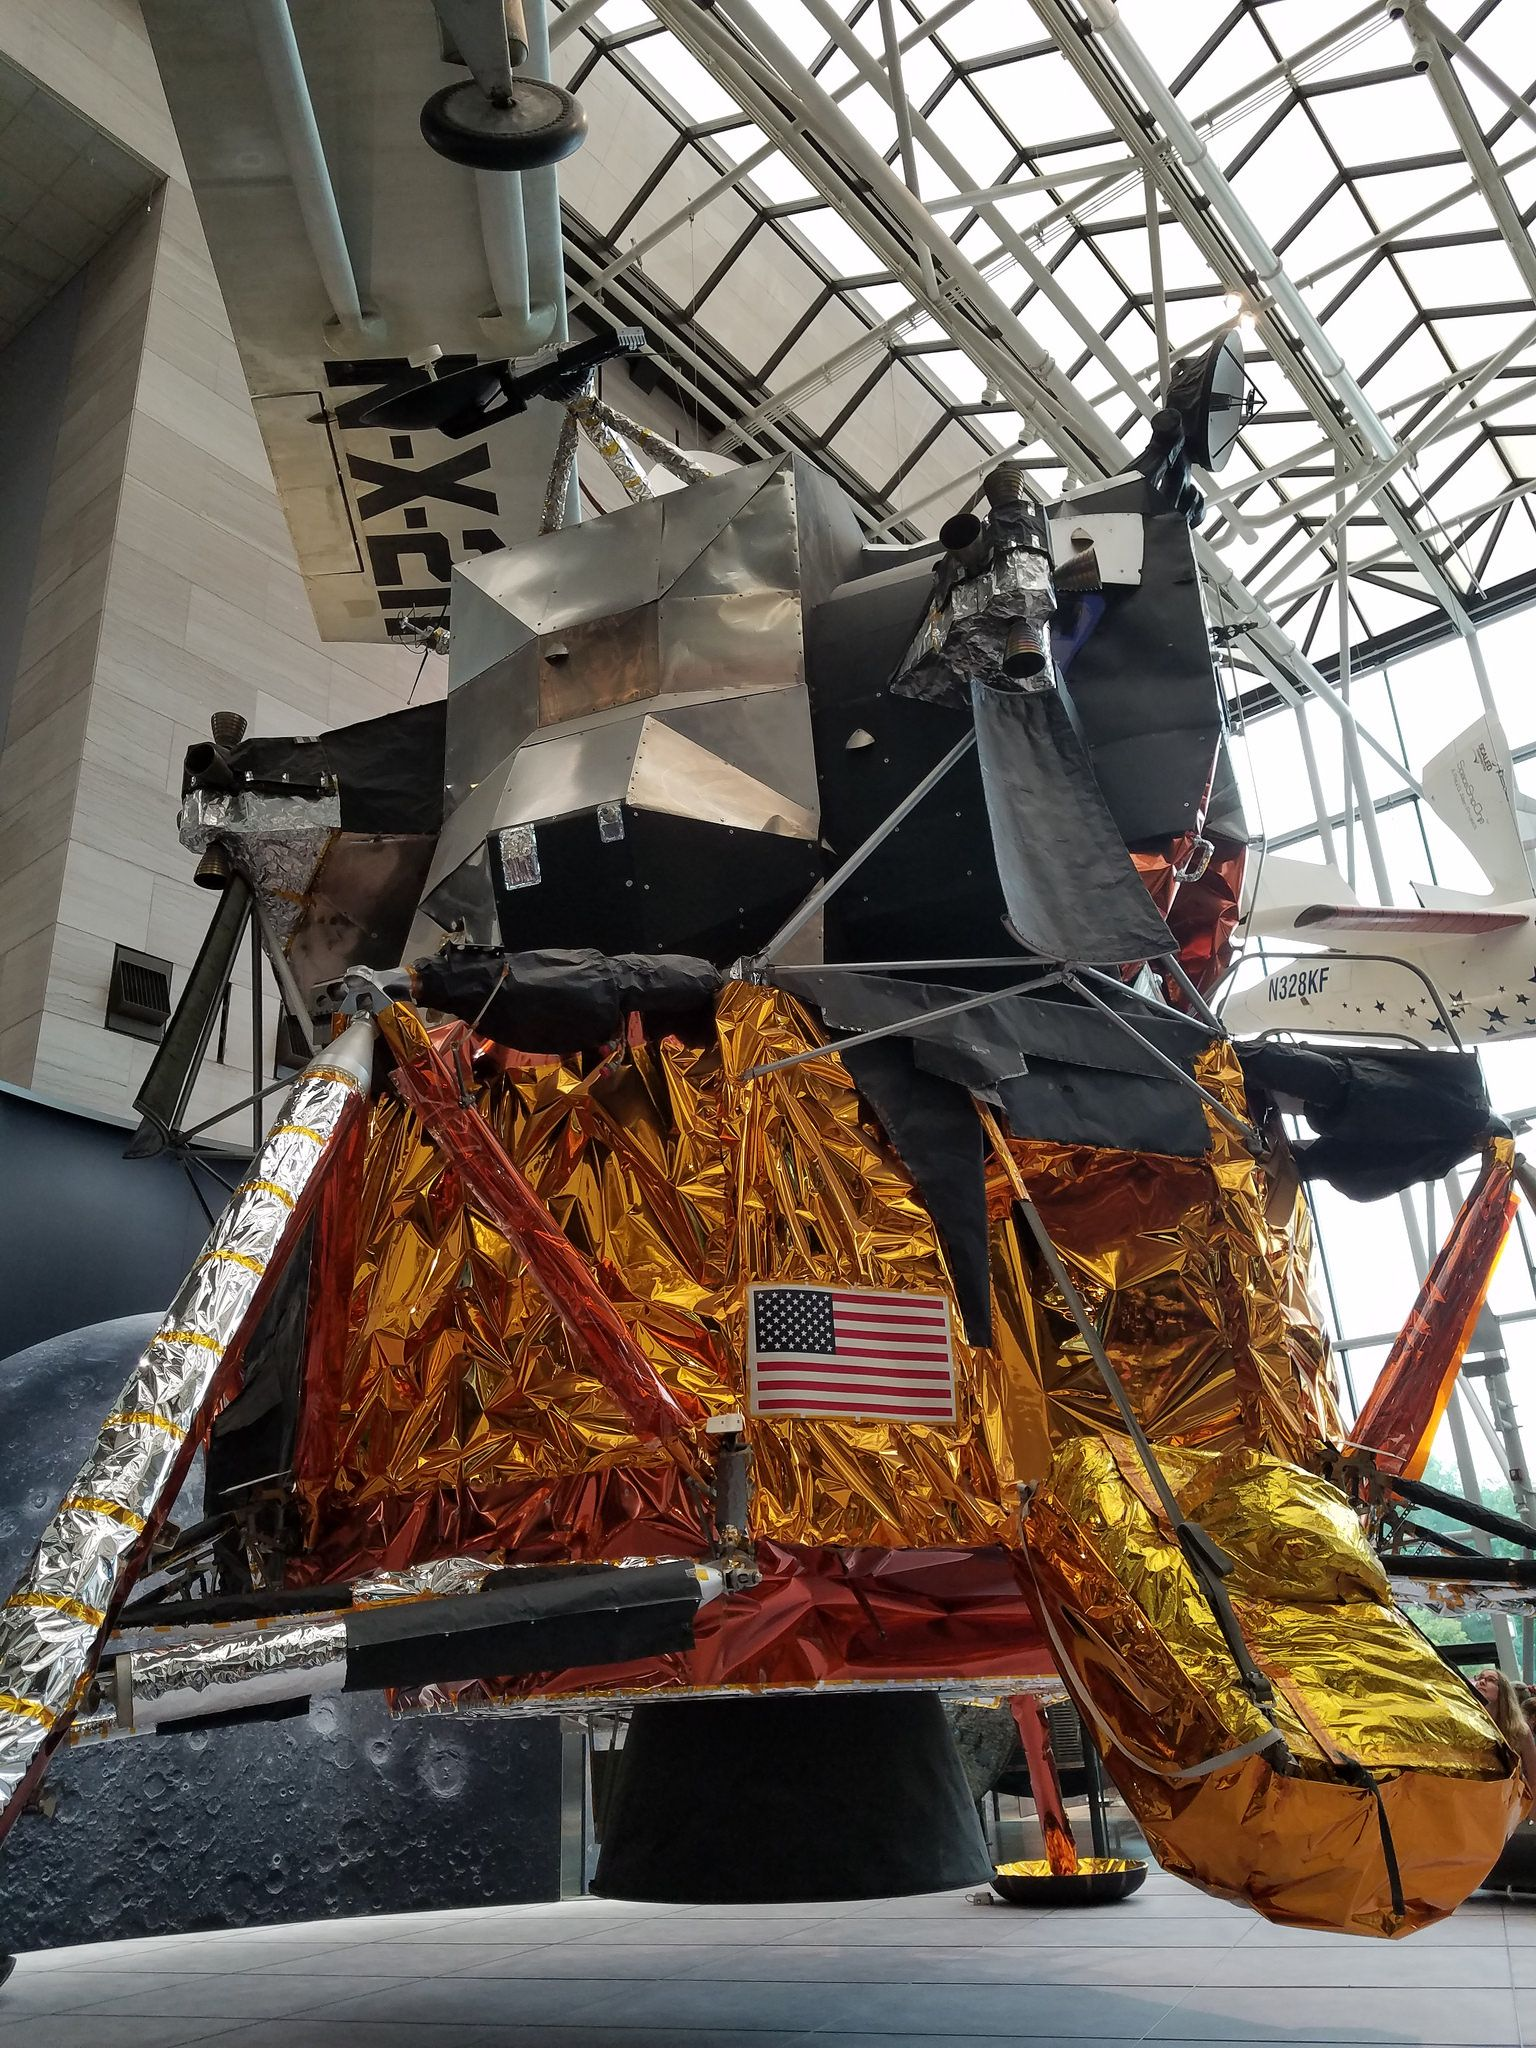 20170815_153319 Air and space museum, Space museum